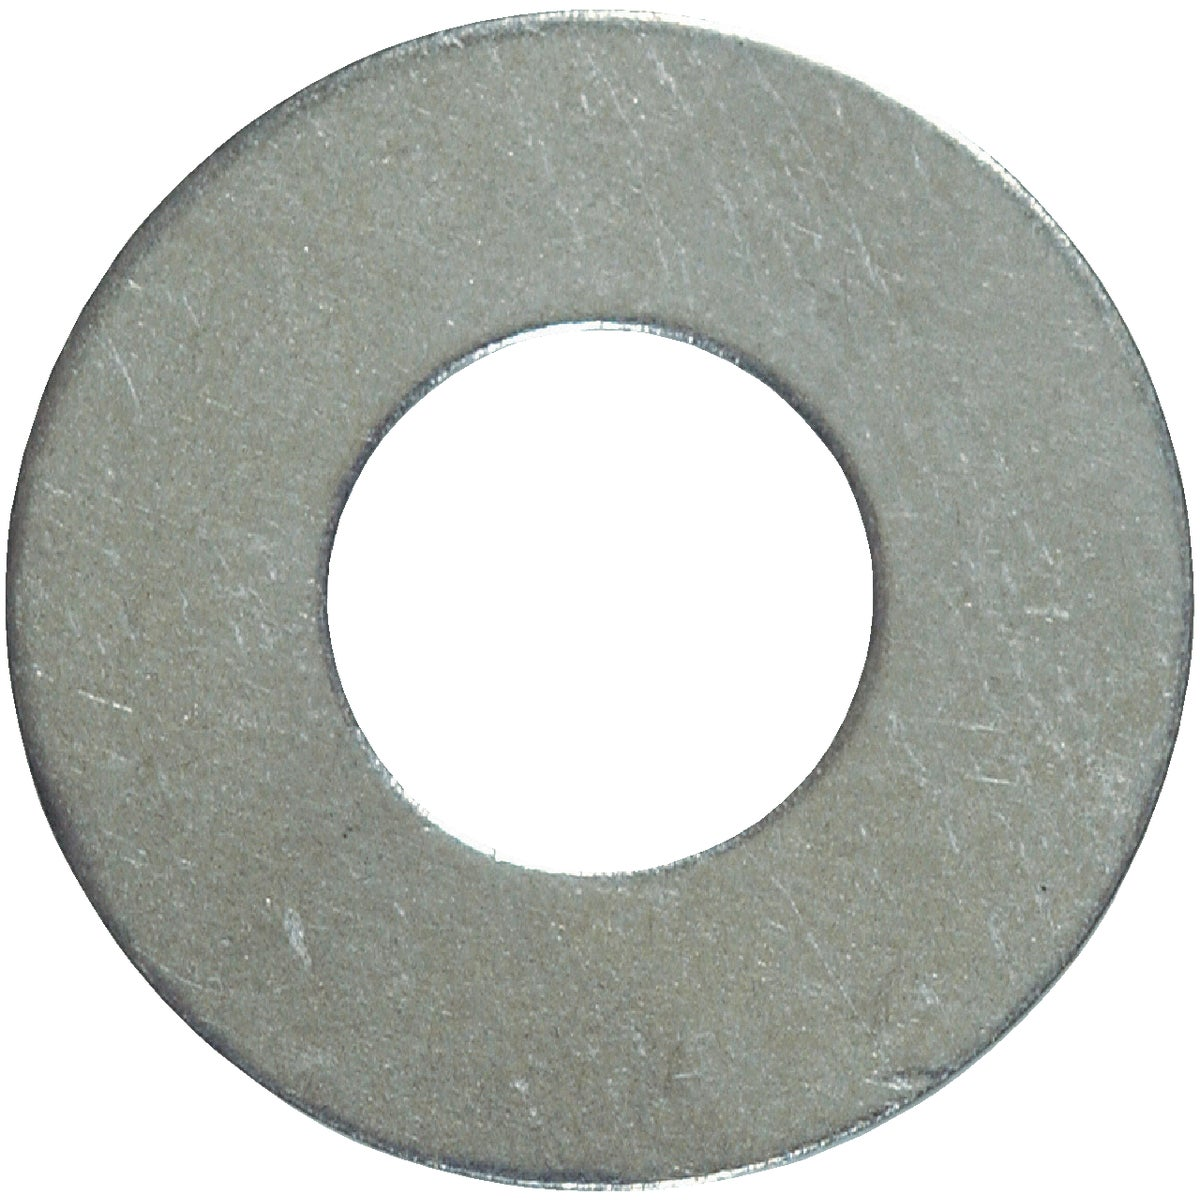 #8 SS FLAT WASHER